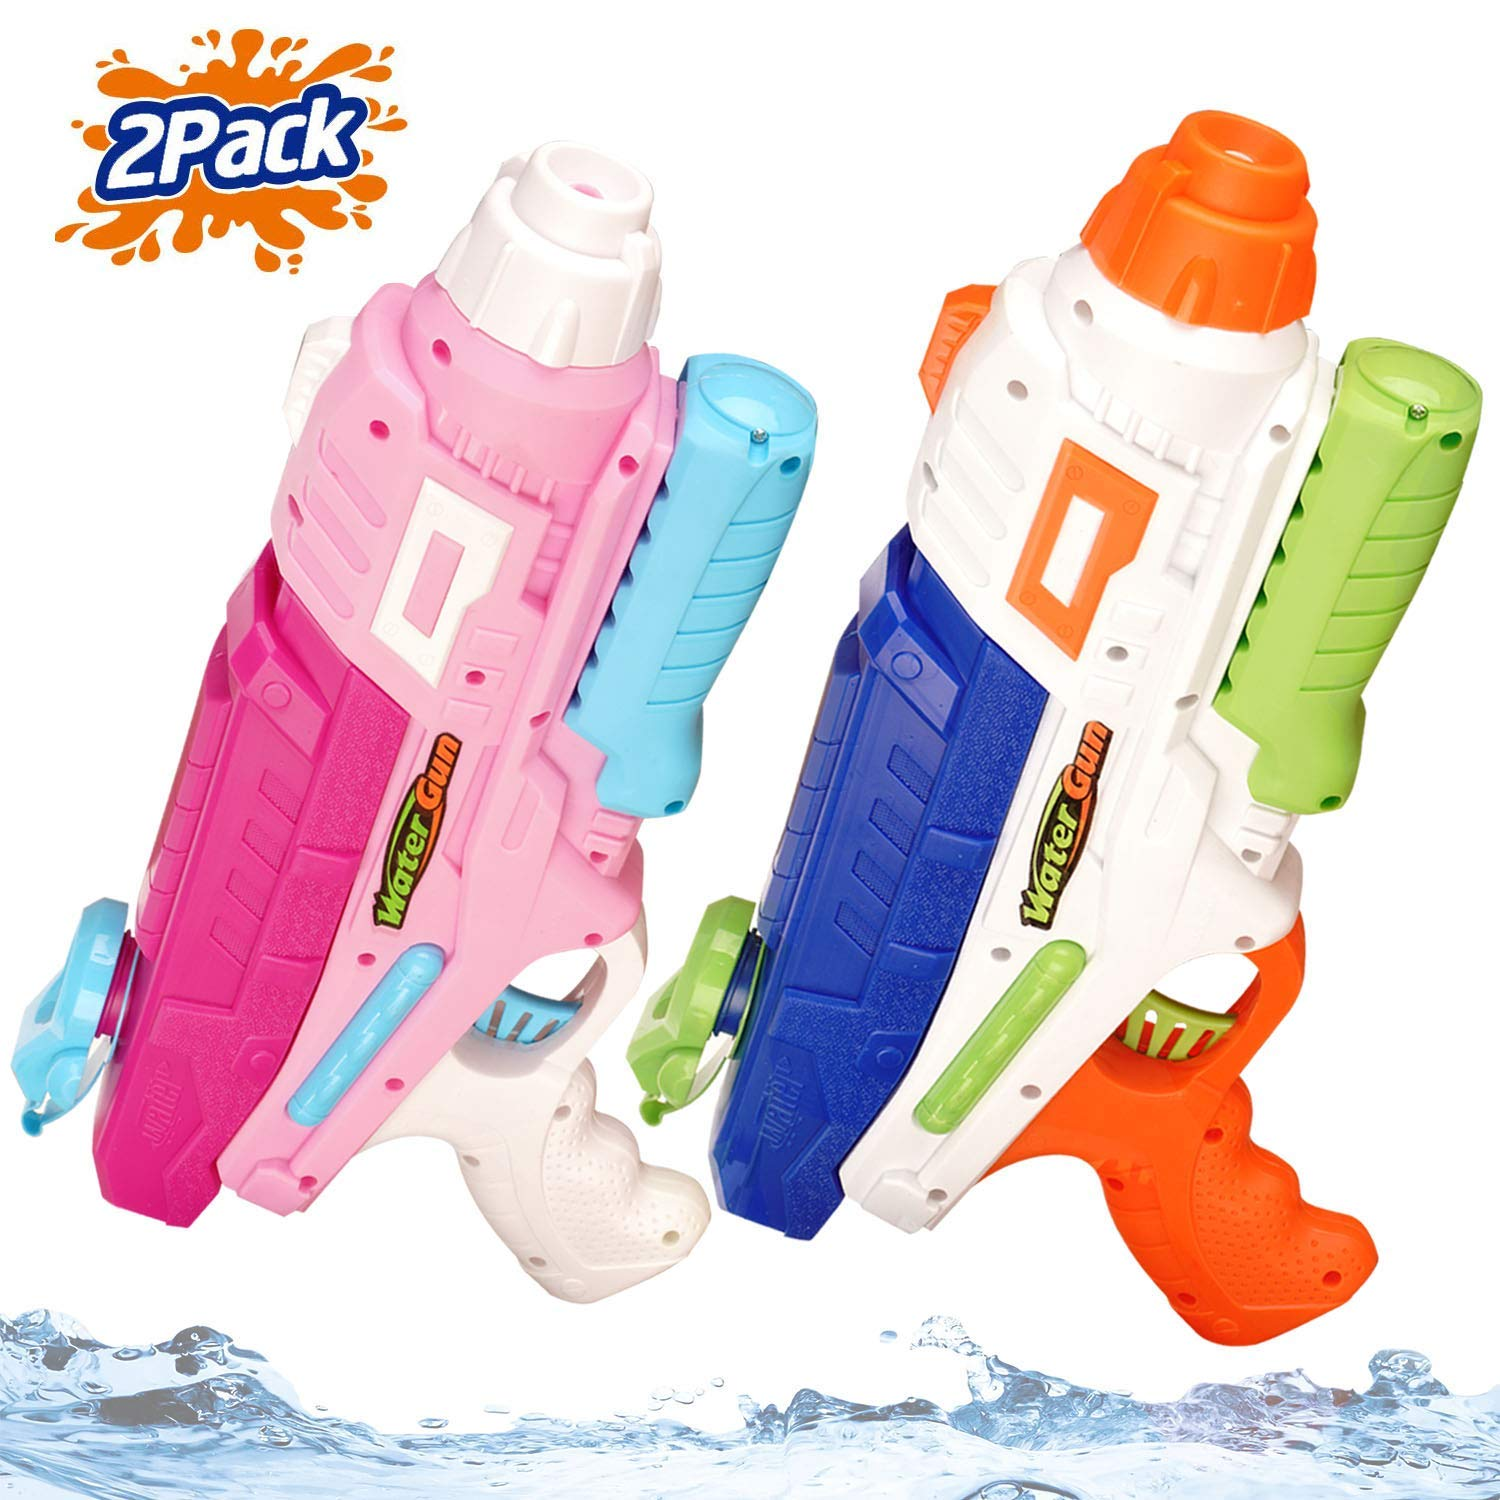 Jogotoll 2 Pack Water Guns for Kids Adults 600CC Blaster 32 Ft Long Range Squirt Guns Pool Beach Sand Toys Water Pistol by Jogotoll